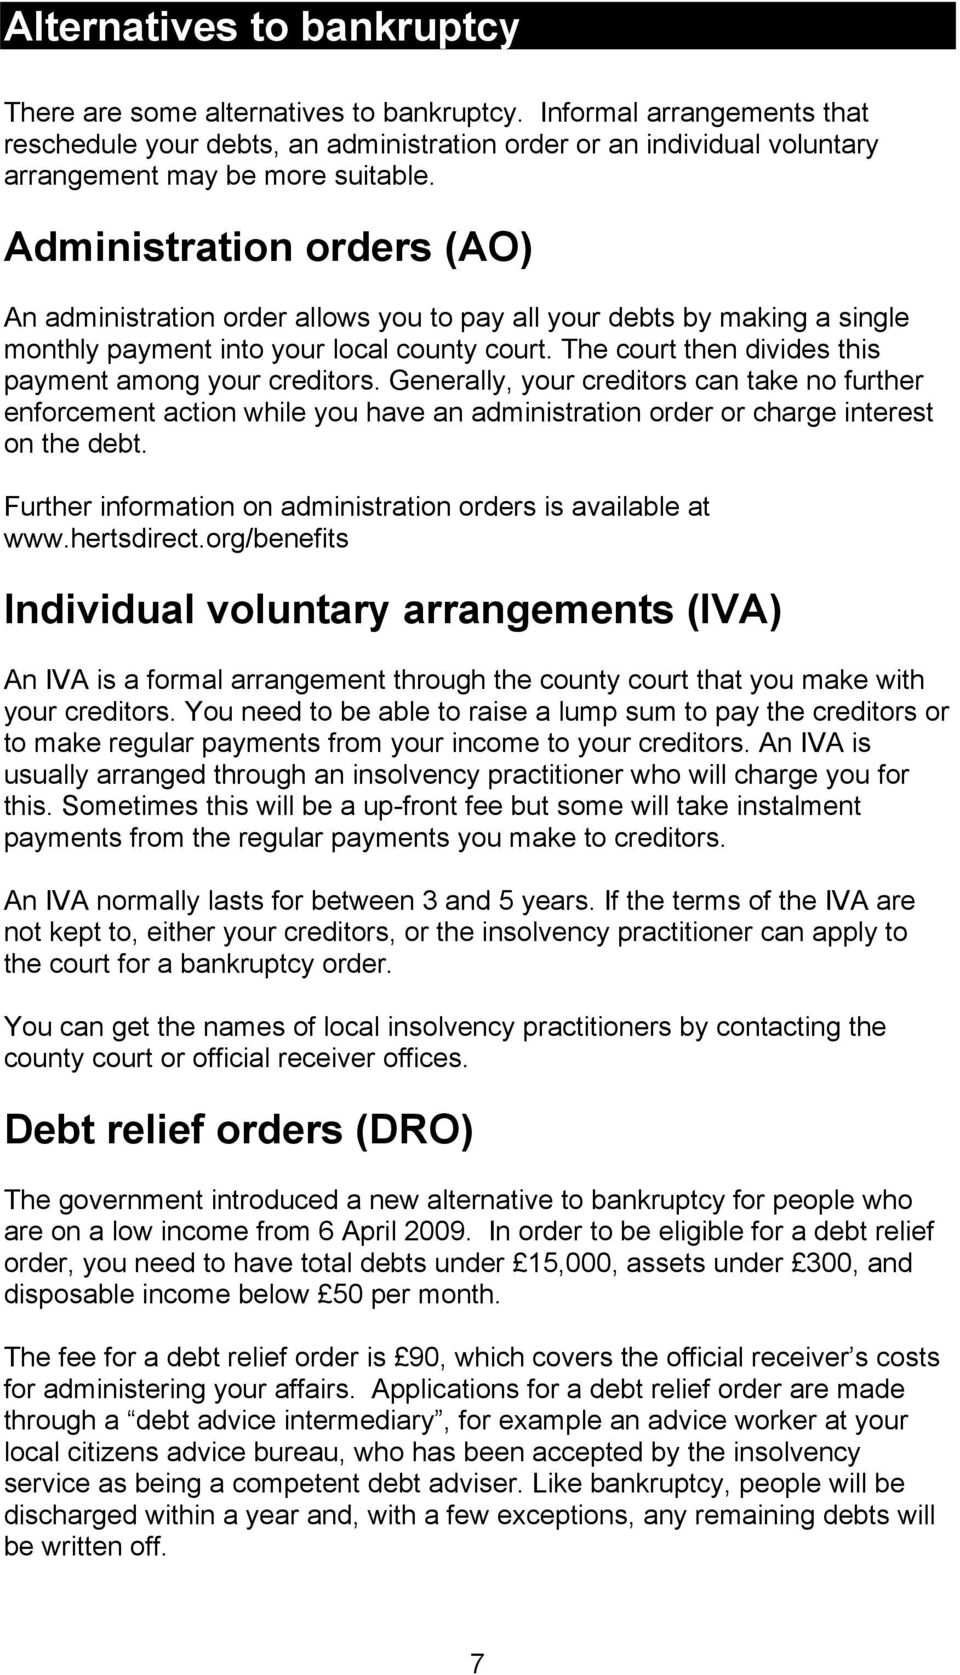 Administration orders (AO) An administration order allows you to pay all your debts by making a single monthly payment into your local county court.